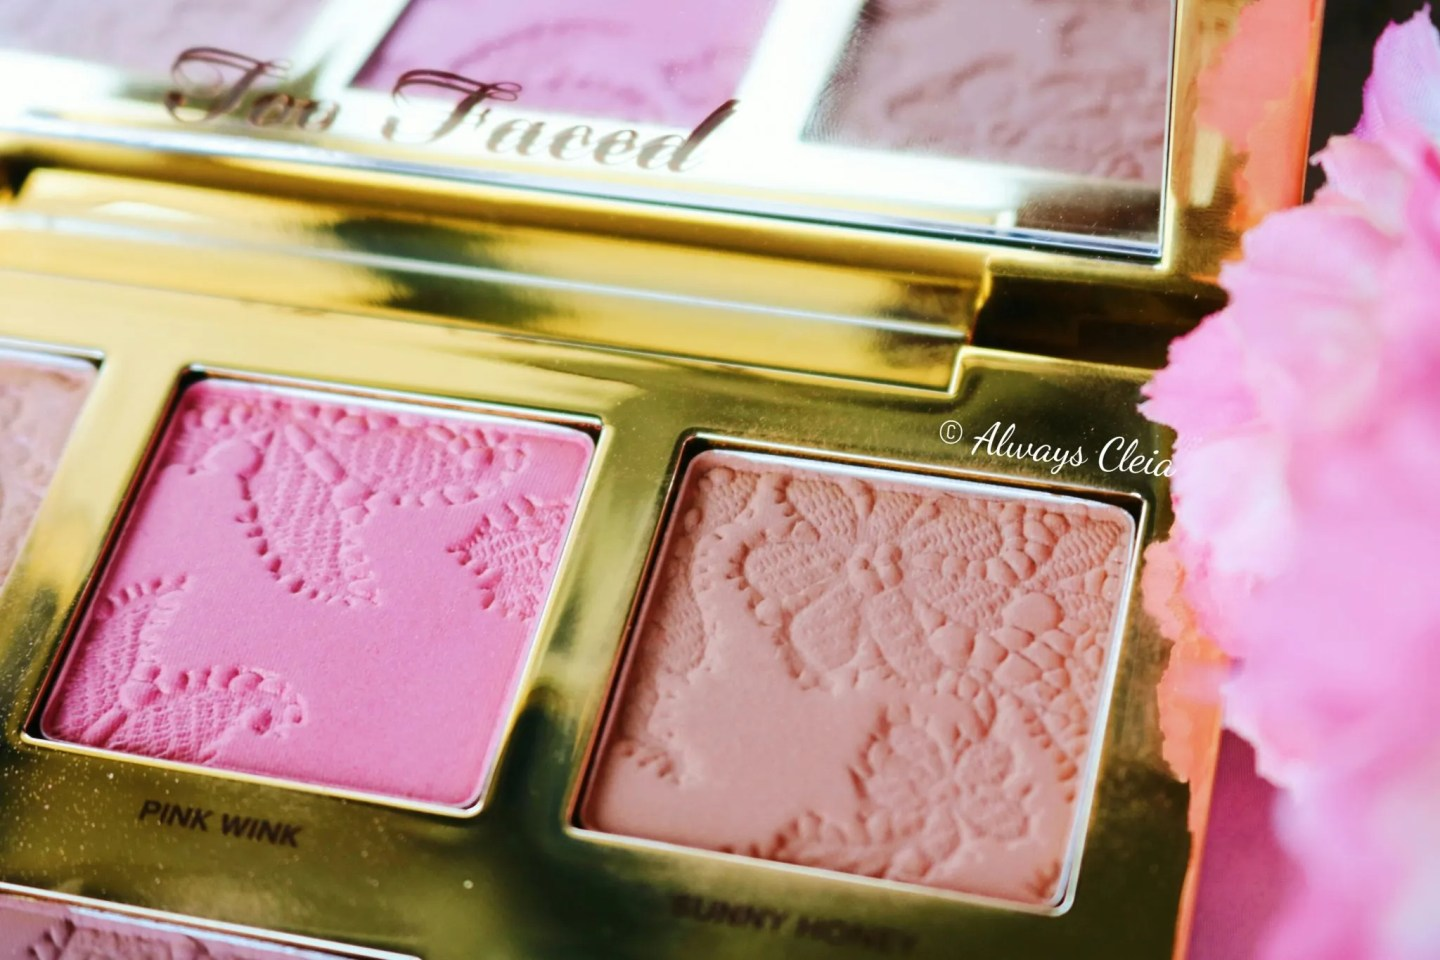 Too Faced Natural Face Palette - Pink Wink & Sunny Honey